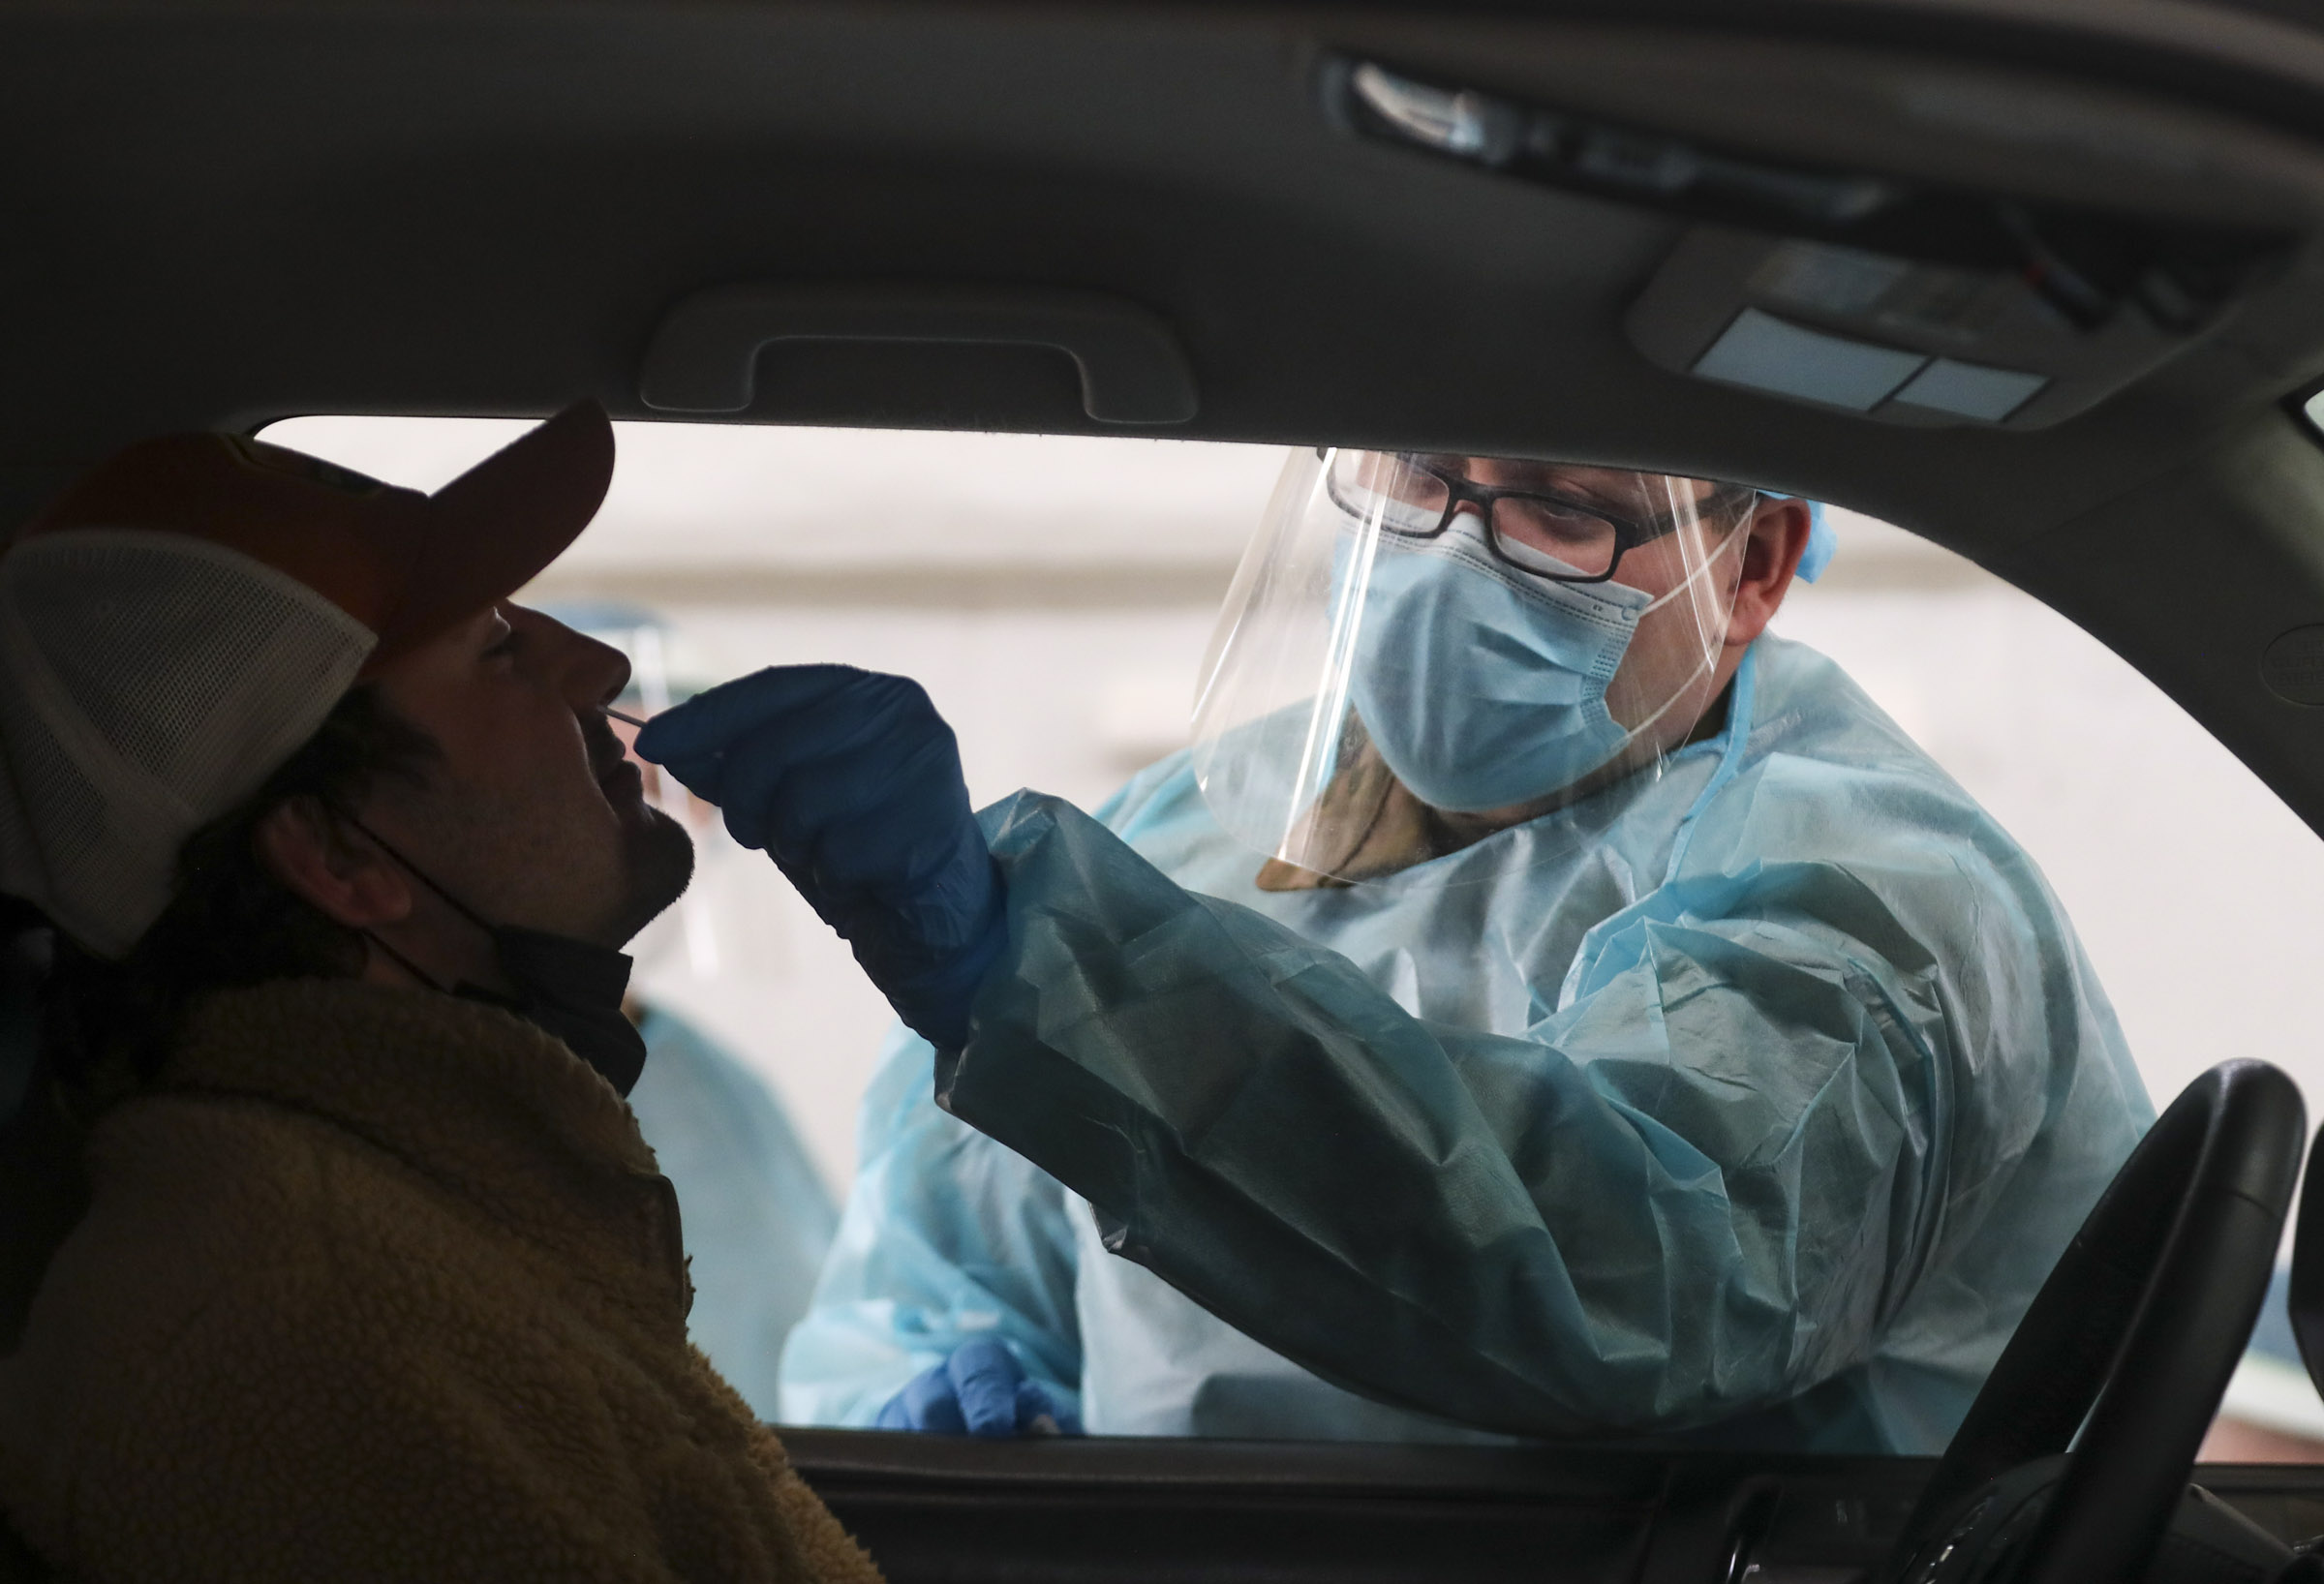 Utah National Guard soldier Ebbin Wyatt administers a COVID-19 test to Nick Bradley at the Utah State Fairpark in Salt Lake City on Monday, March 8, 2021.